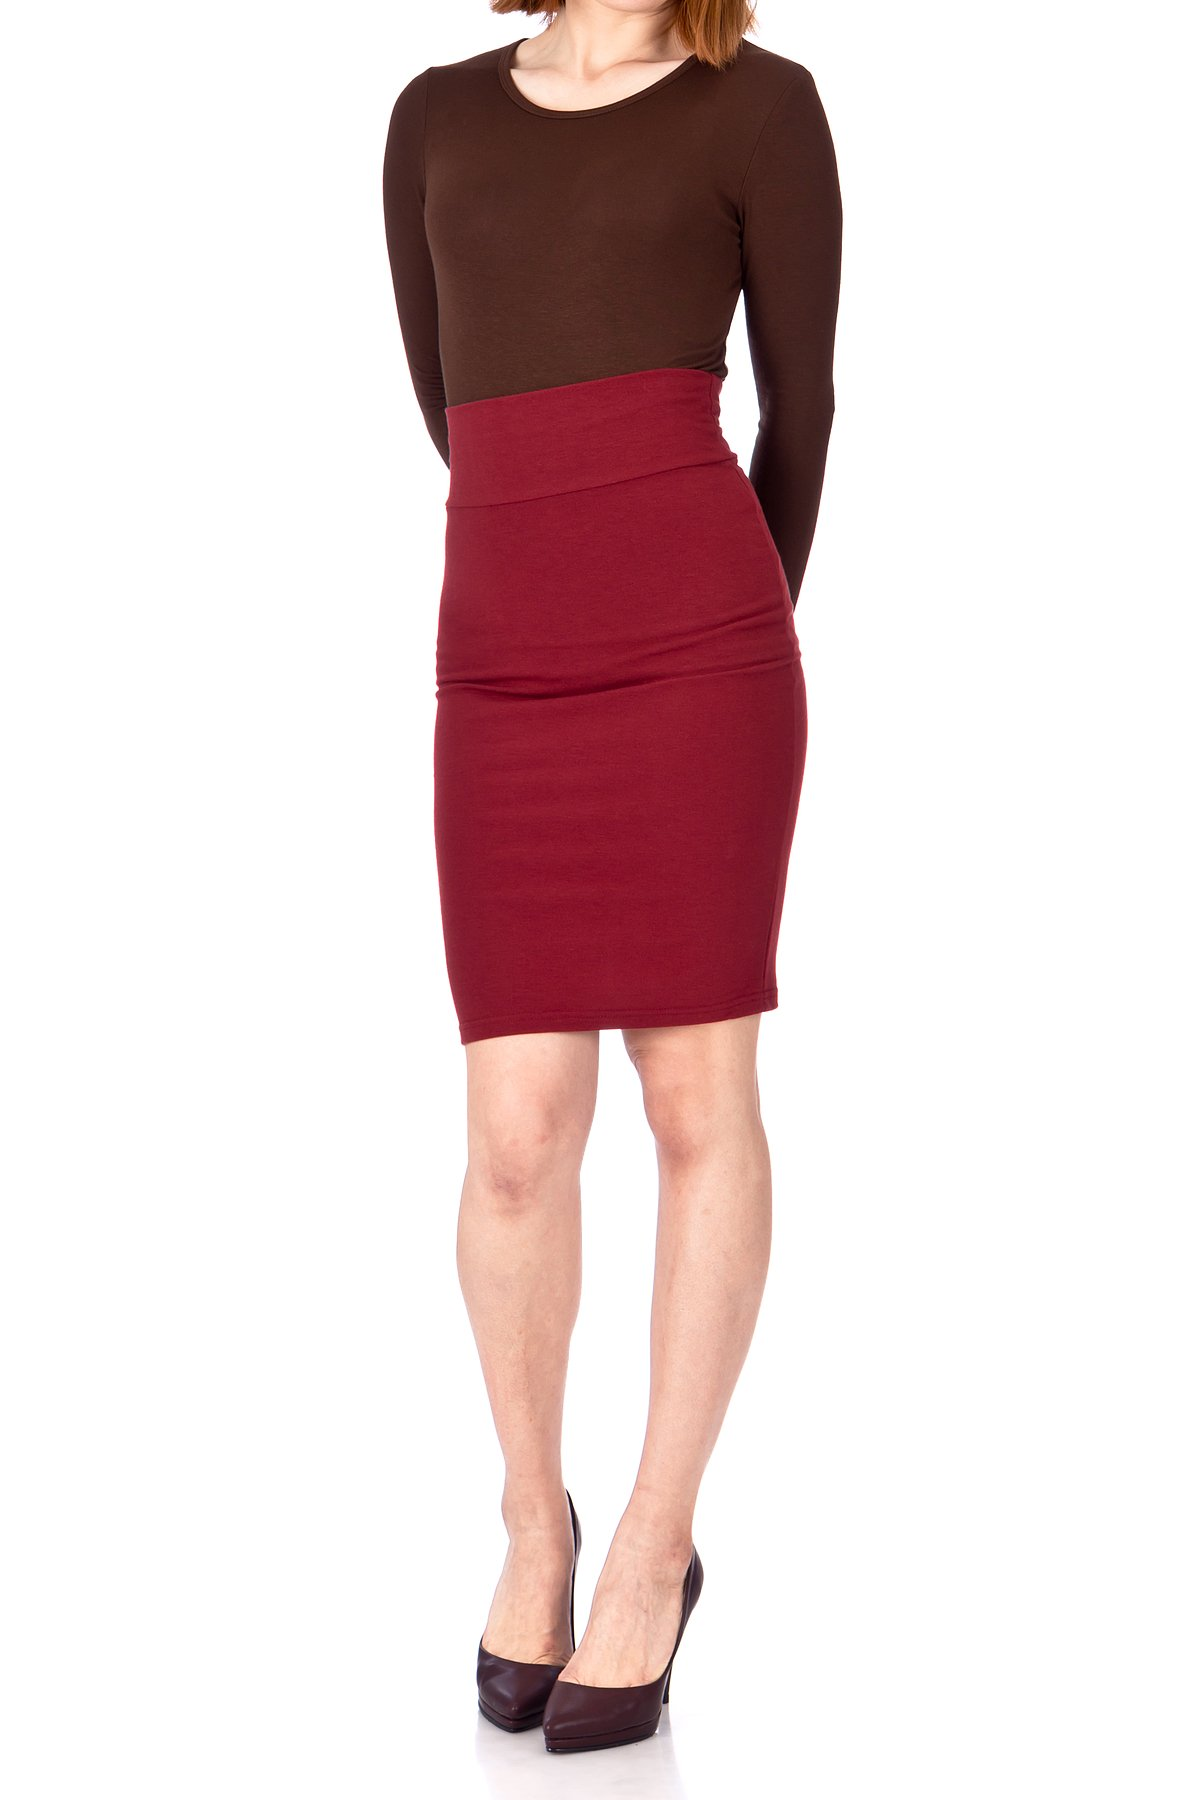 Every Occasion Stretch Pull on Wide High Waist Bodycon Pencil Knee Length Midi Skirt Burgundy 02